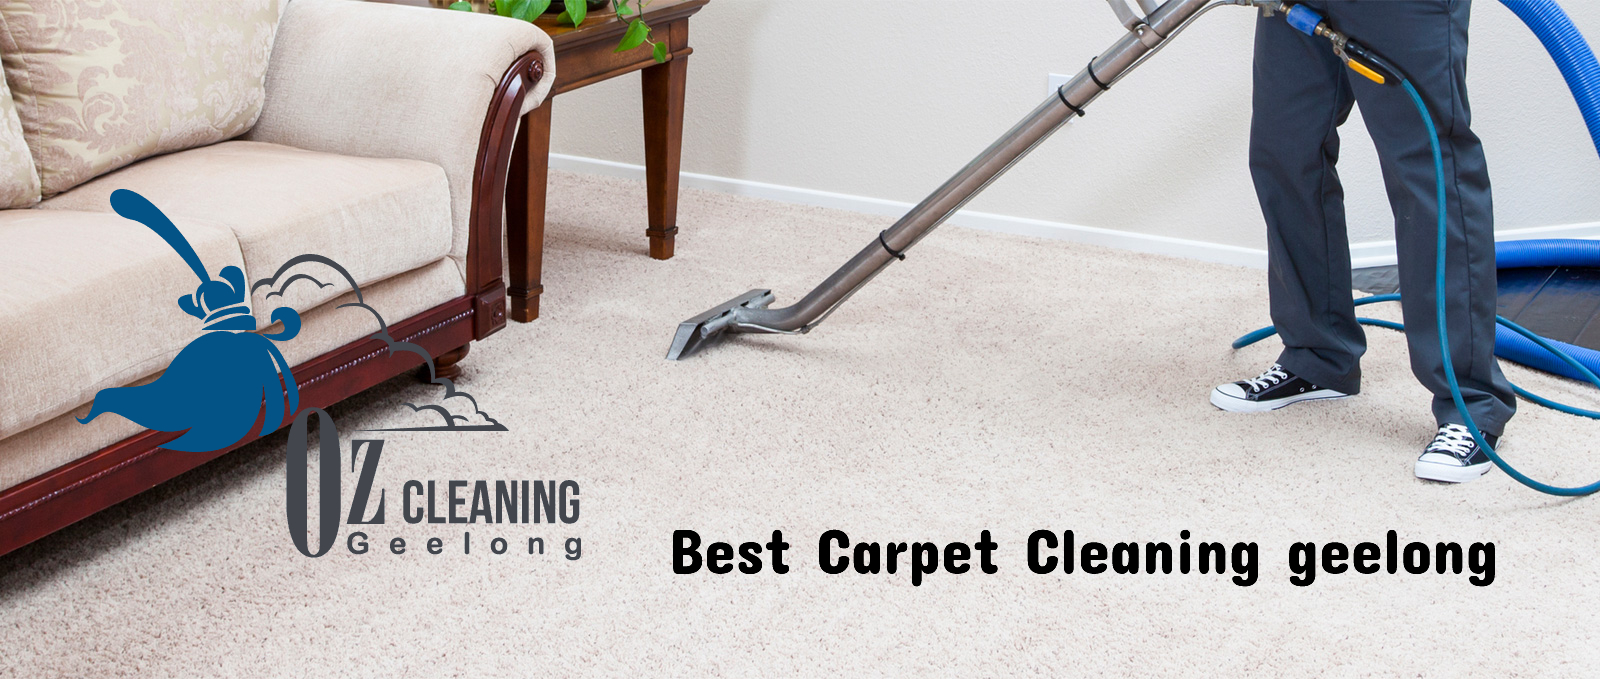 hire carpet cleaning geelong